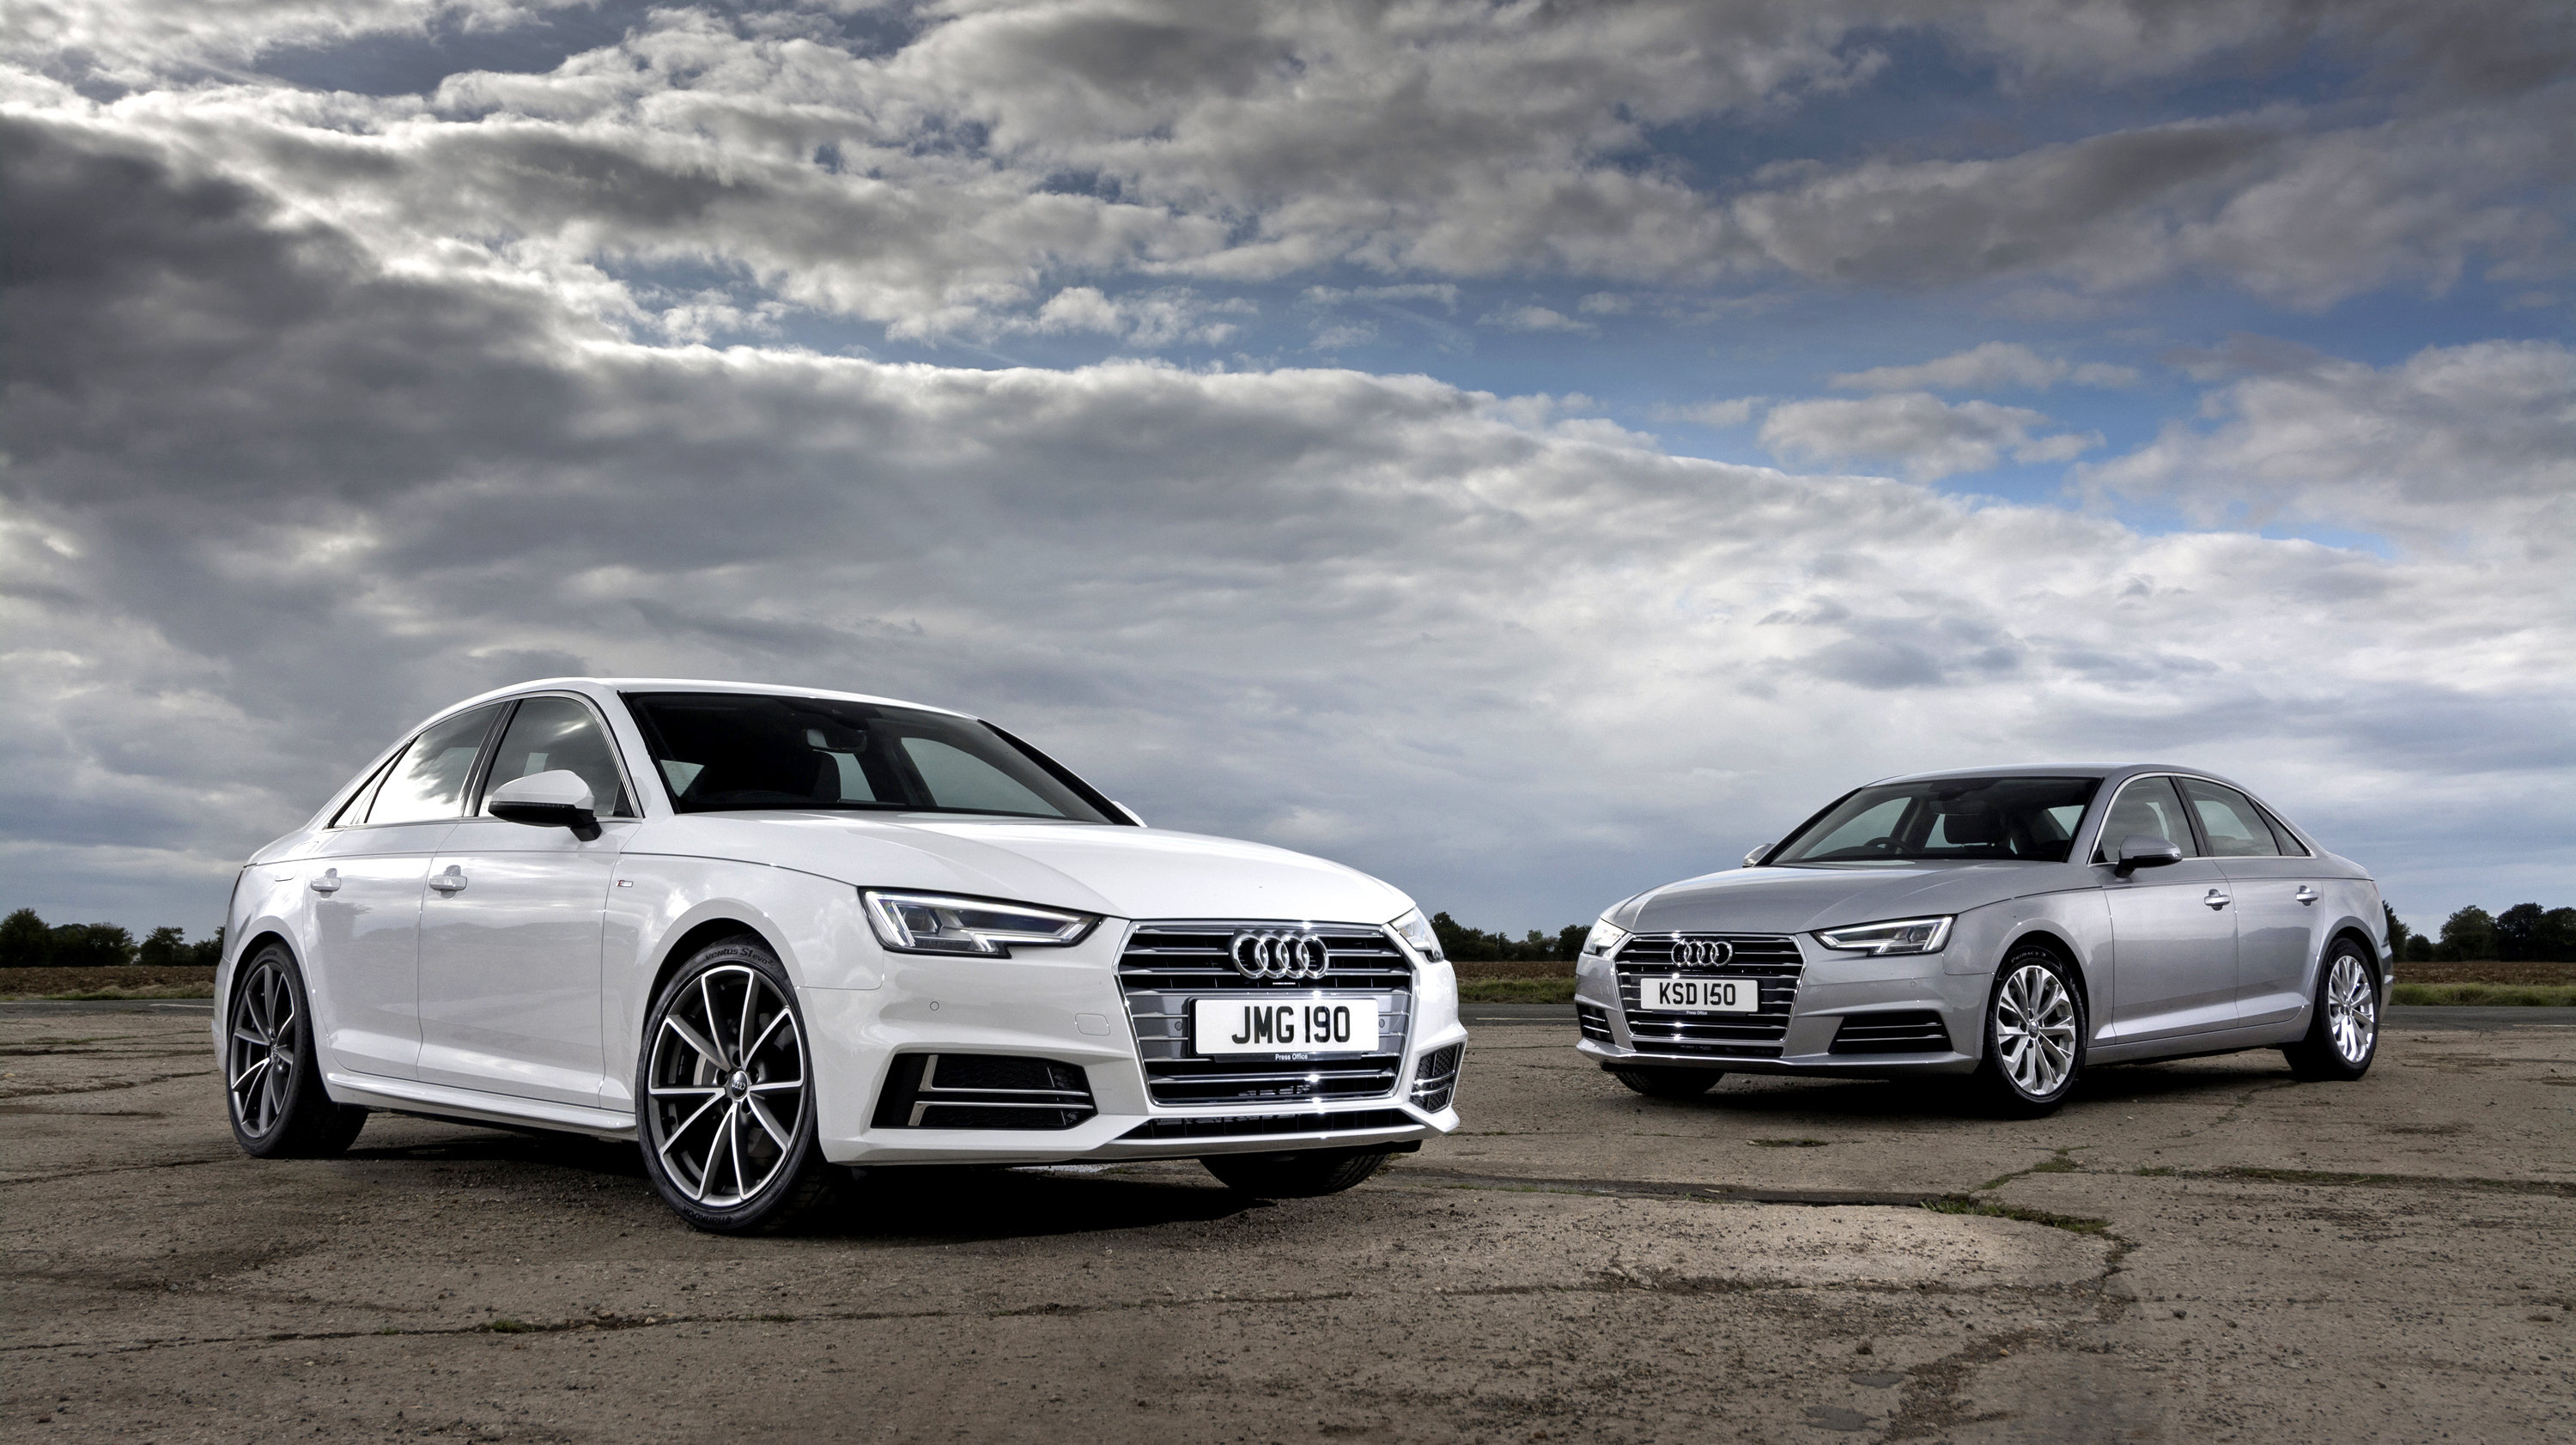 audi a4 hd wallpaper background image 3000x1683 id of